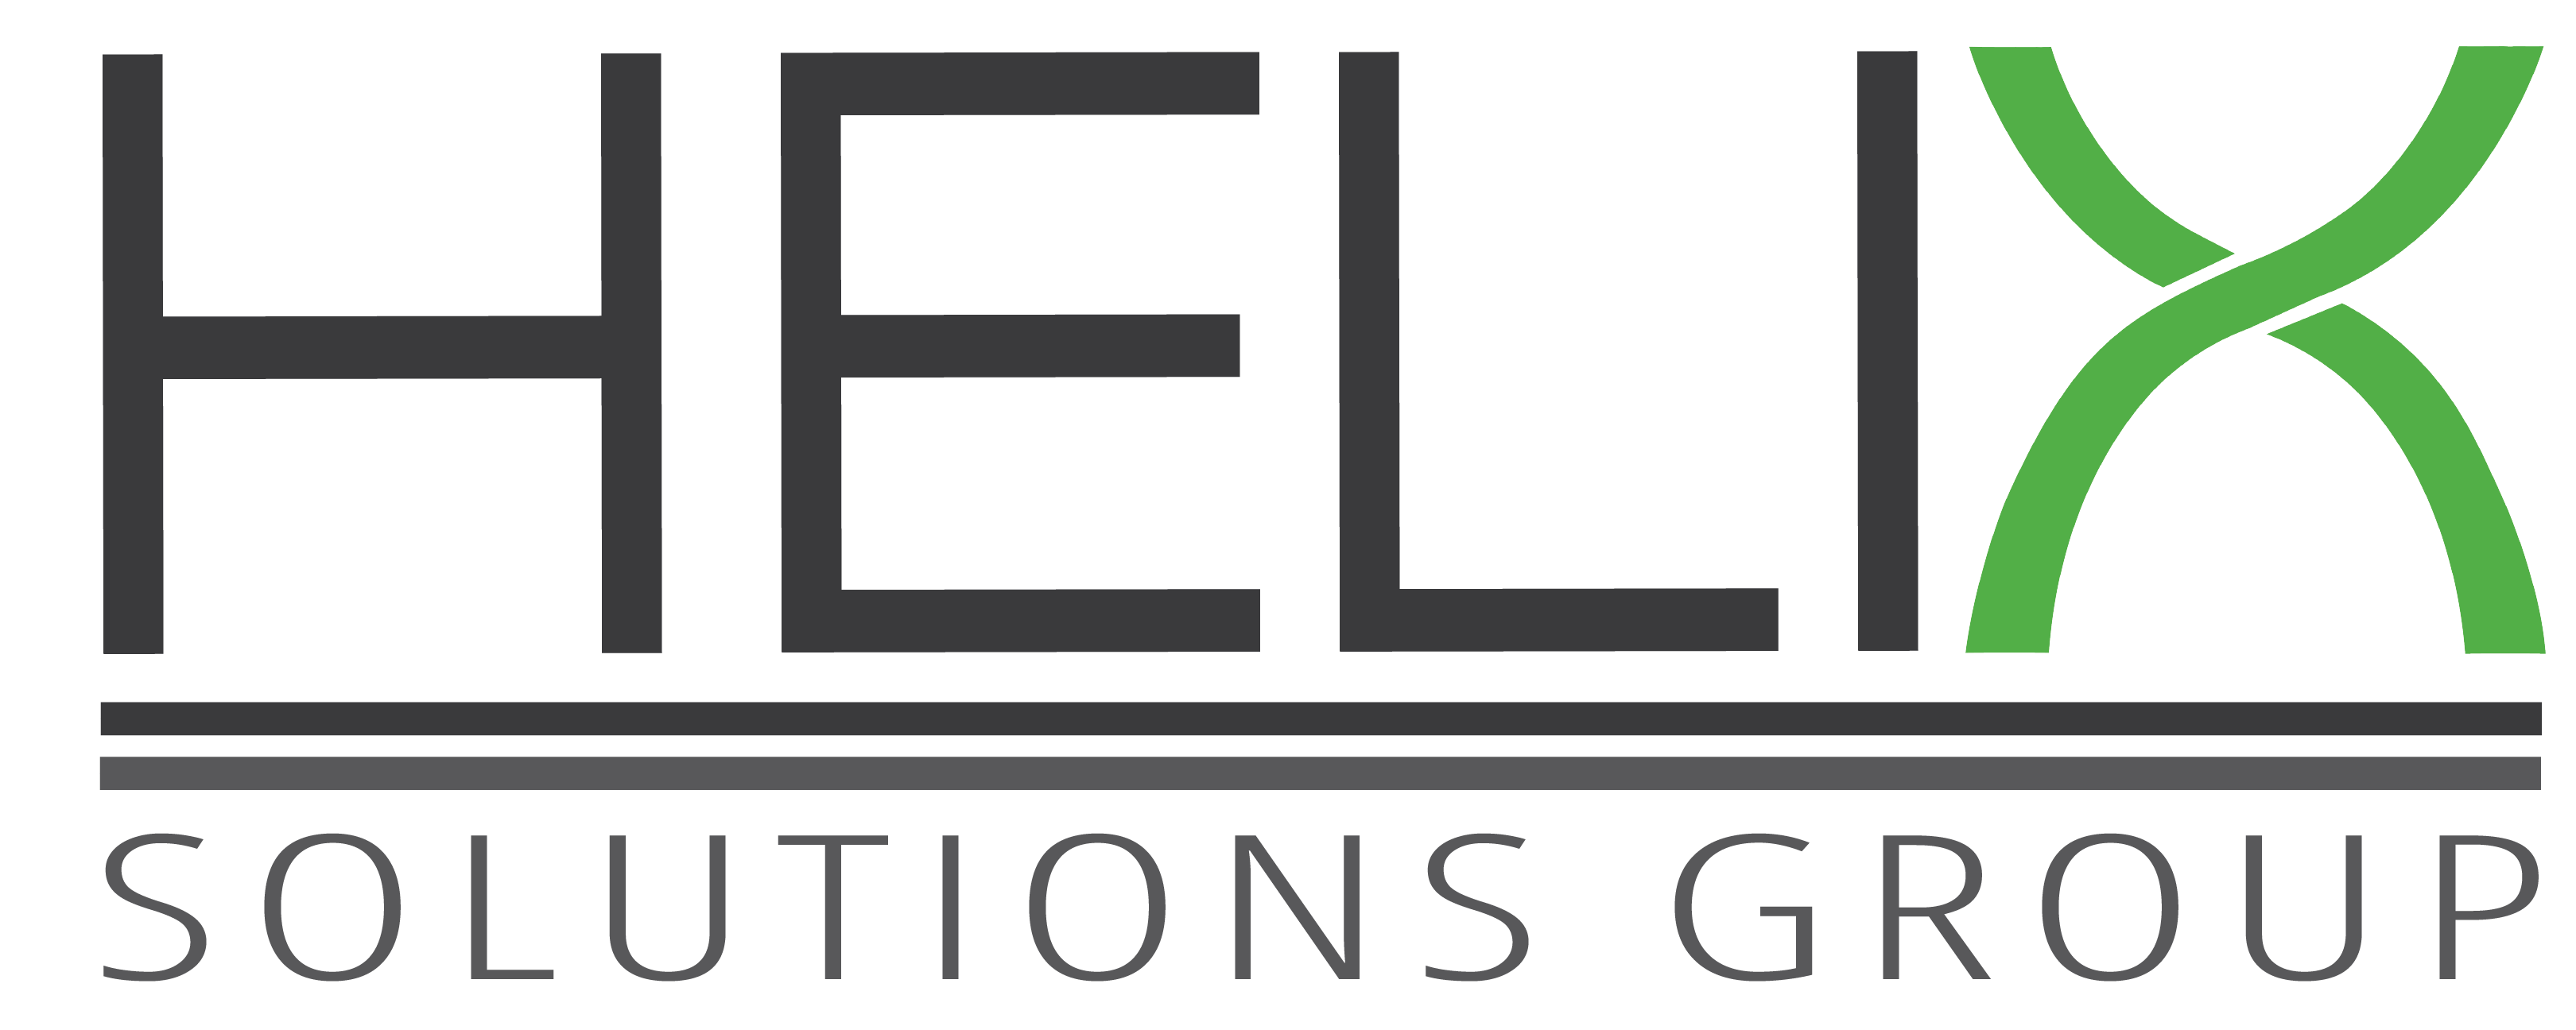 Helix Solutions Group